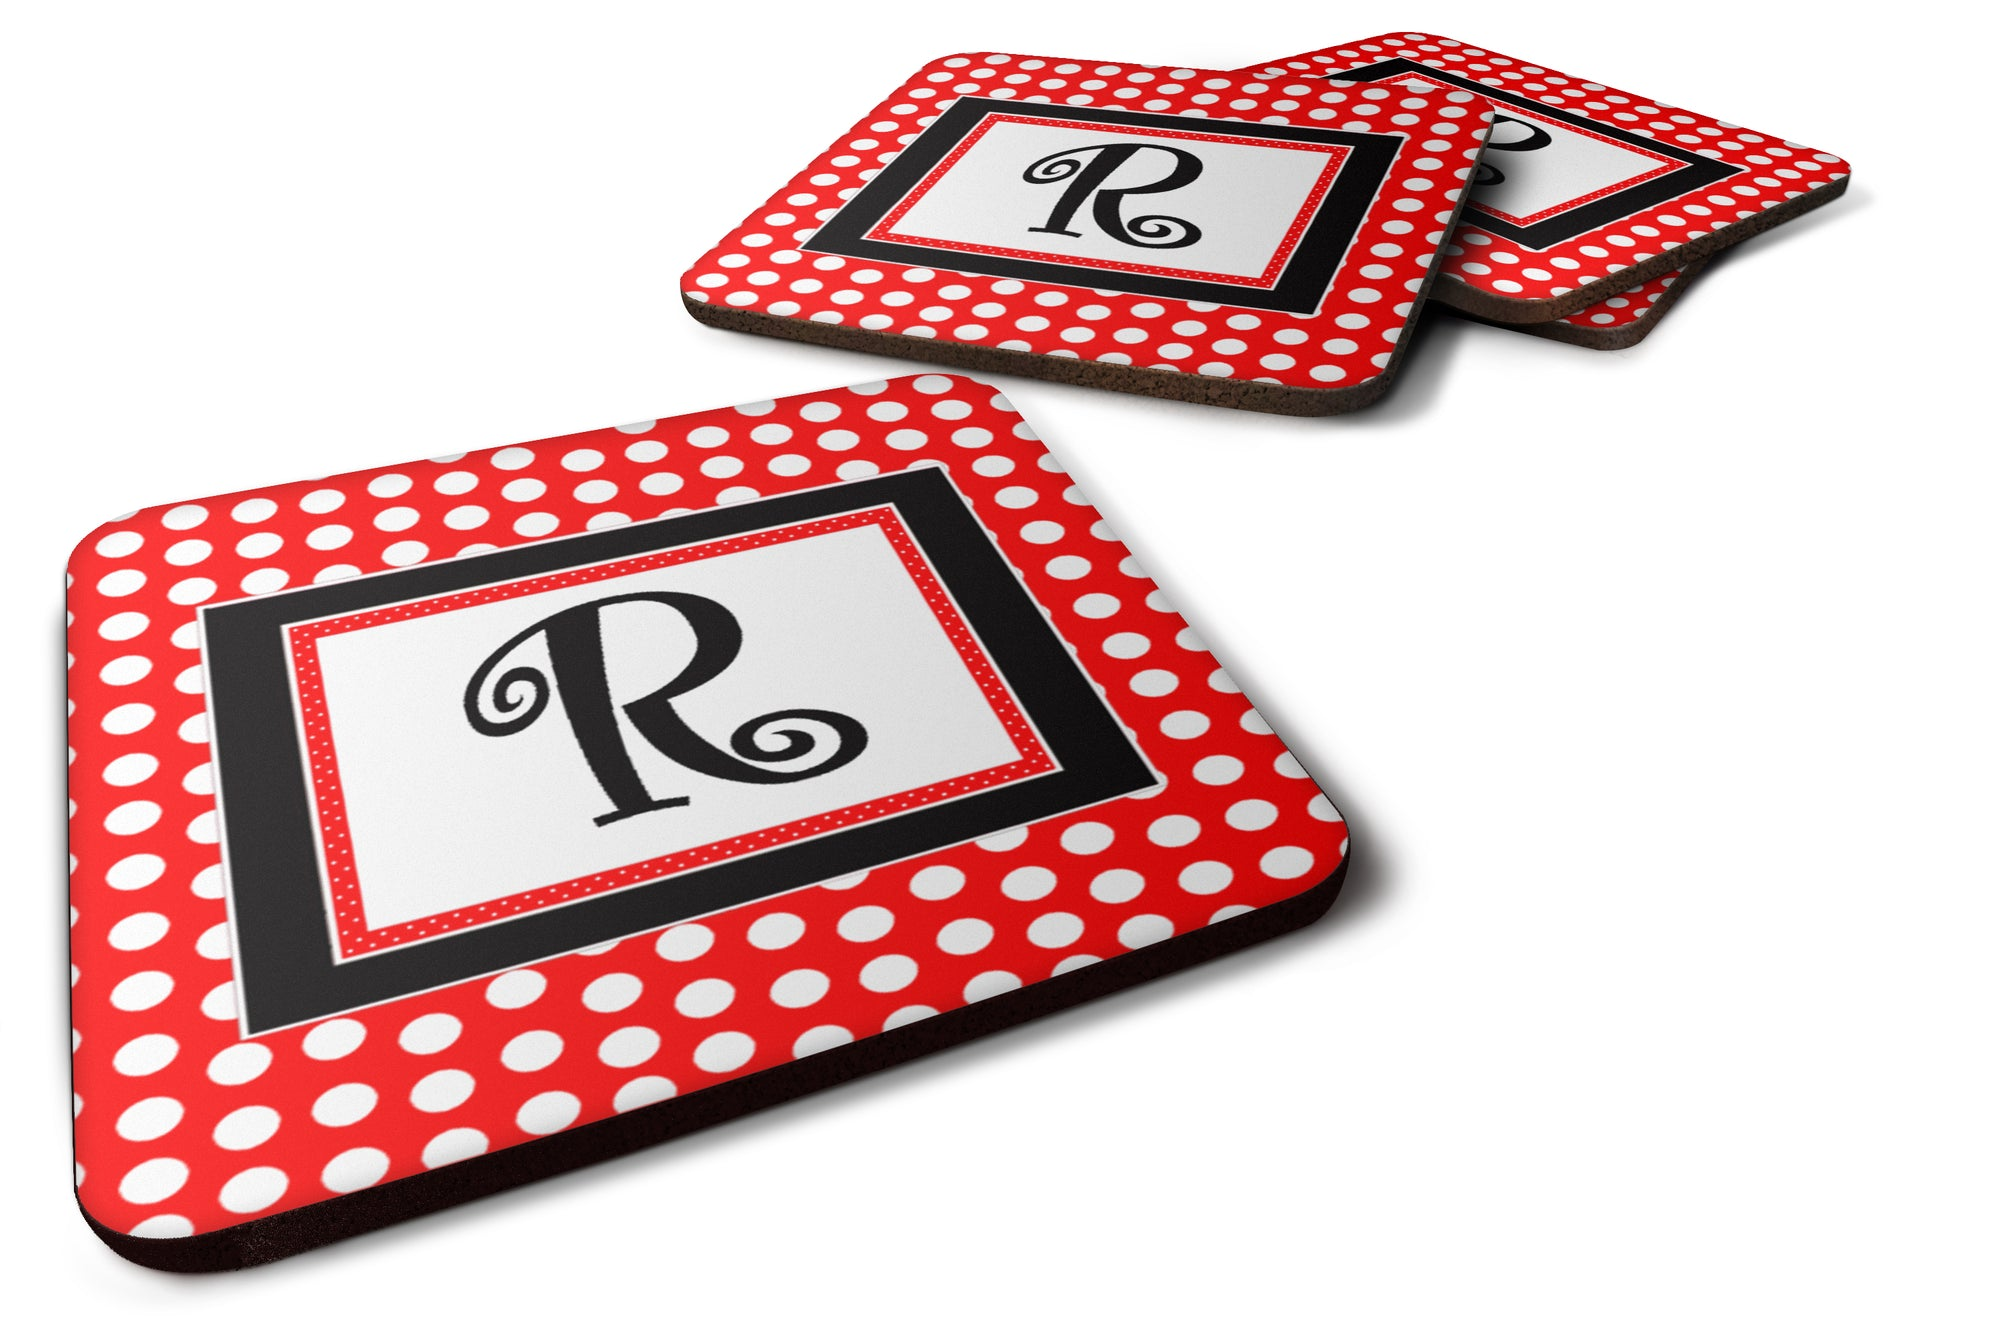 Set of 4 Monogram - Red Black Polka Dots Foam Coasters Initial Letter R by Caroline's Treasures